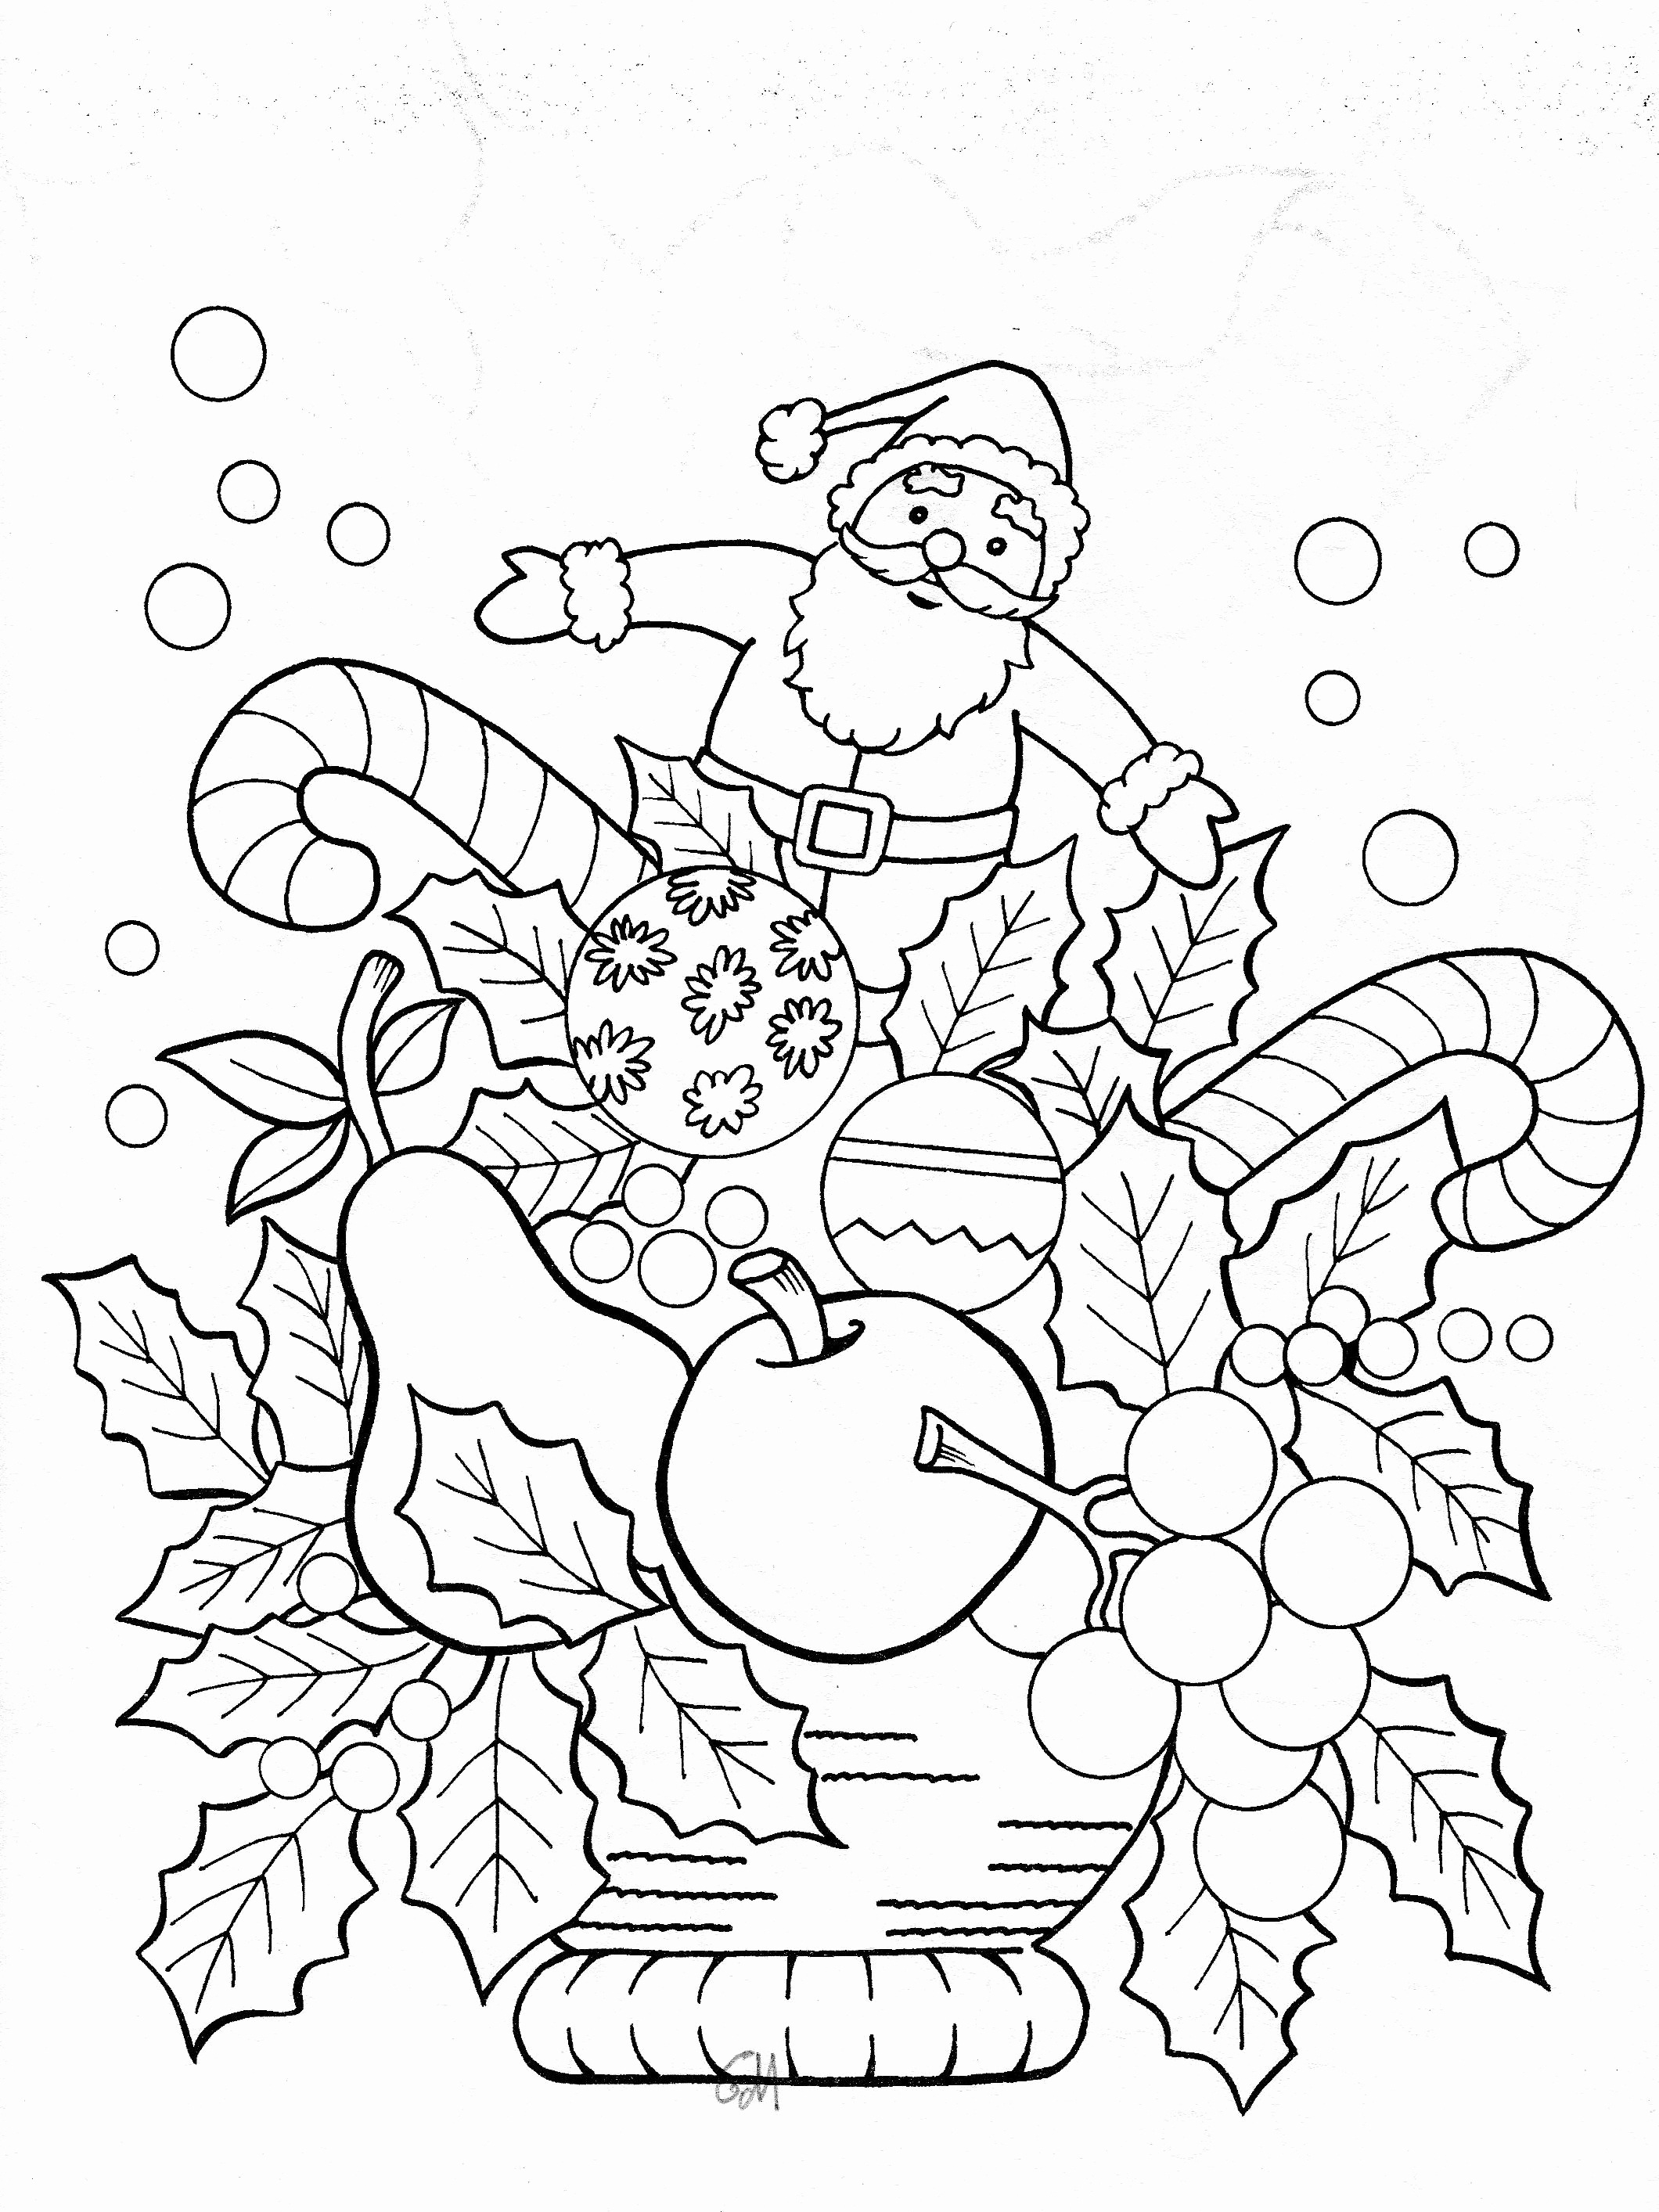 Lego Coloring Pages  Gallery 17h - Free For kids